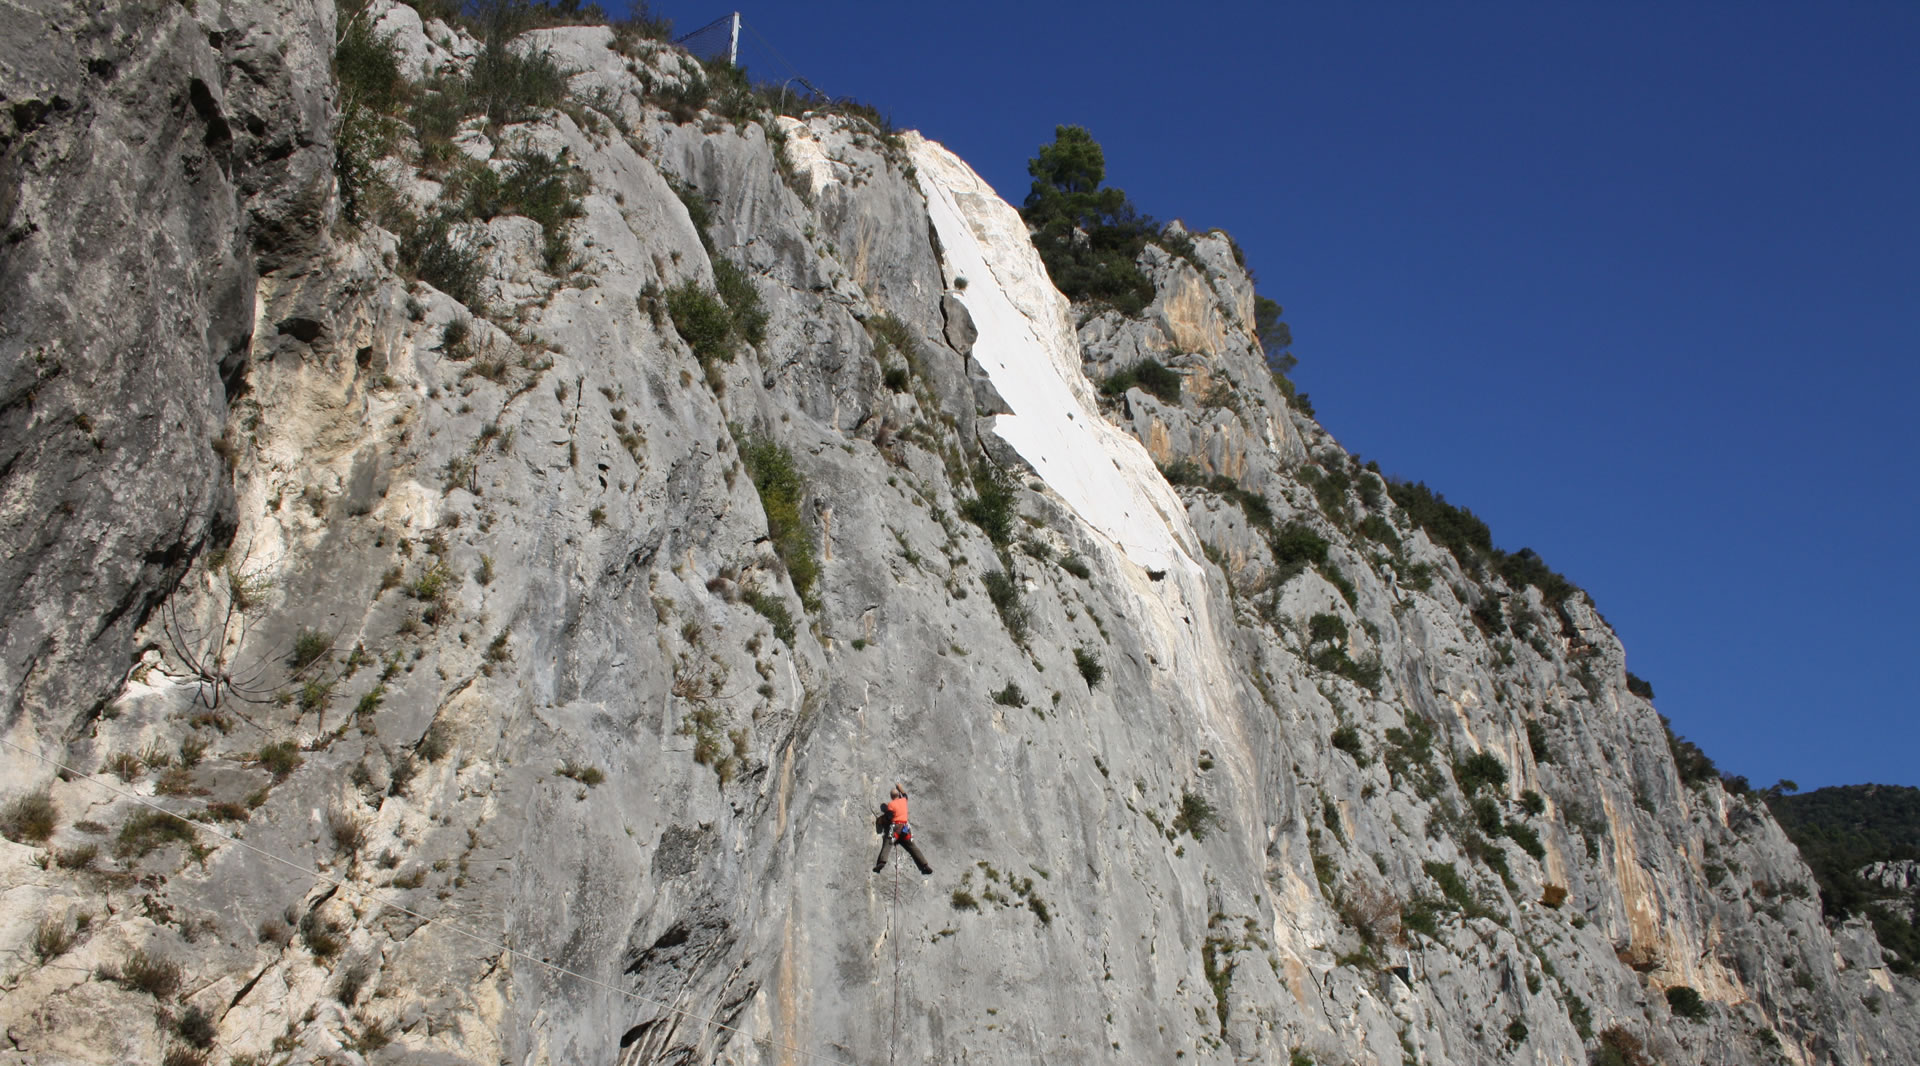 Rock Climbing in Ferentillo